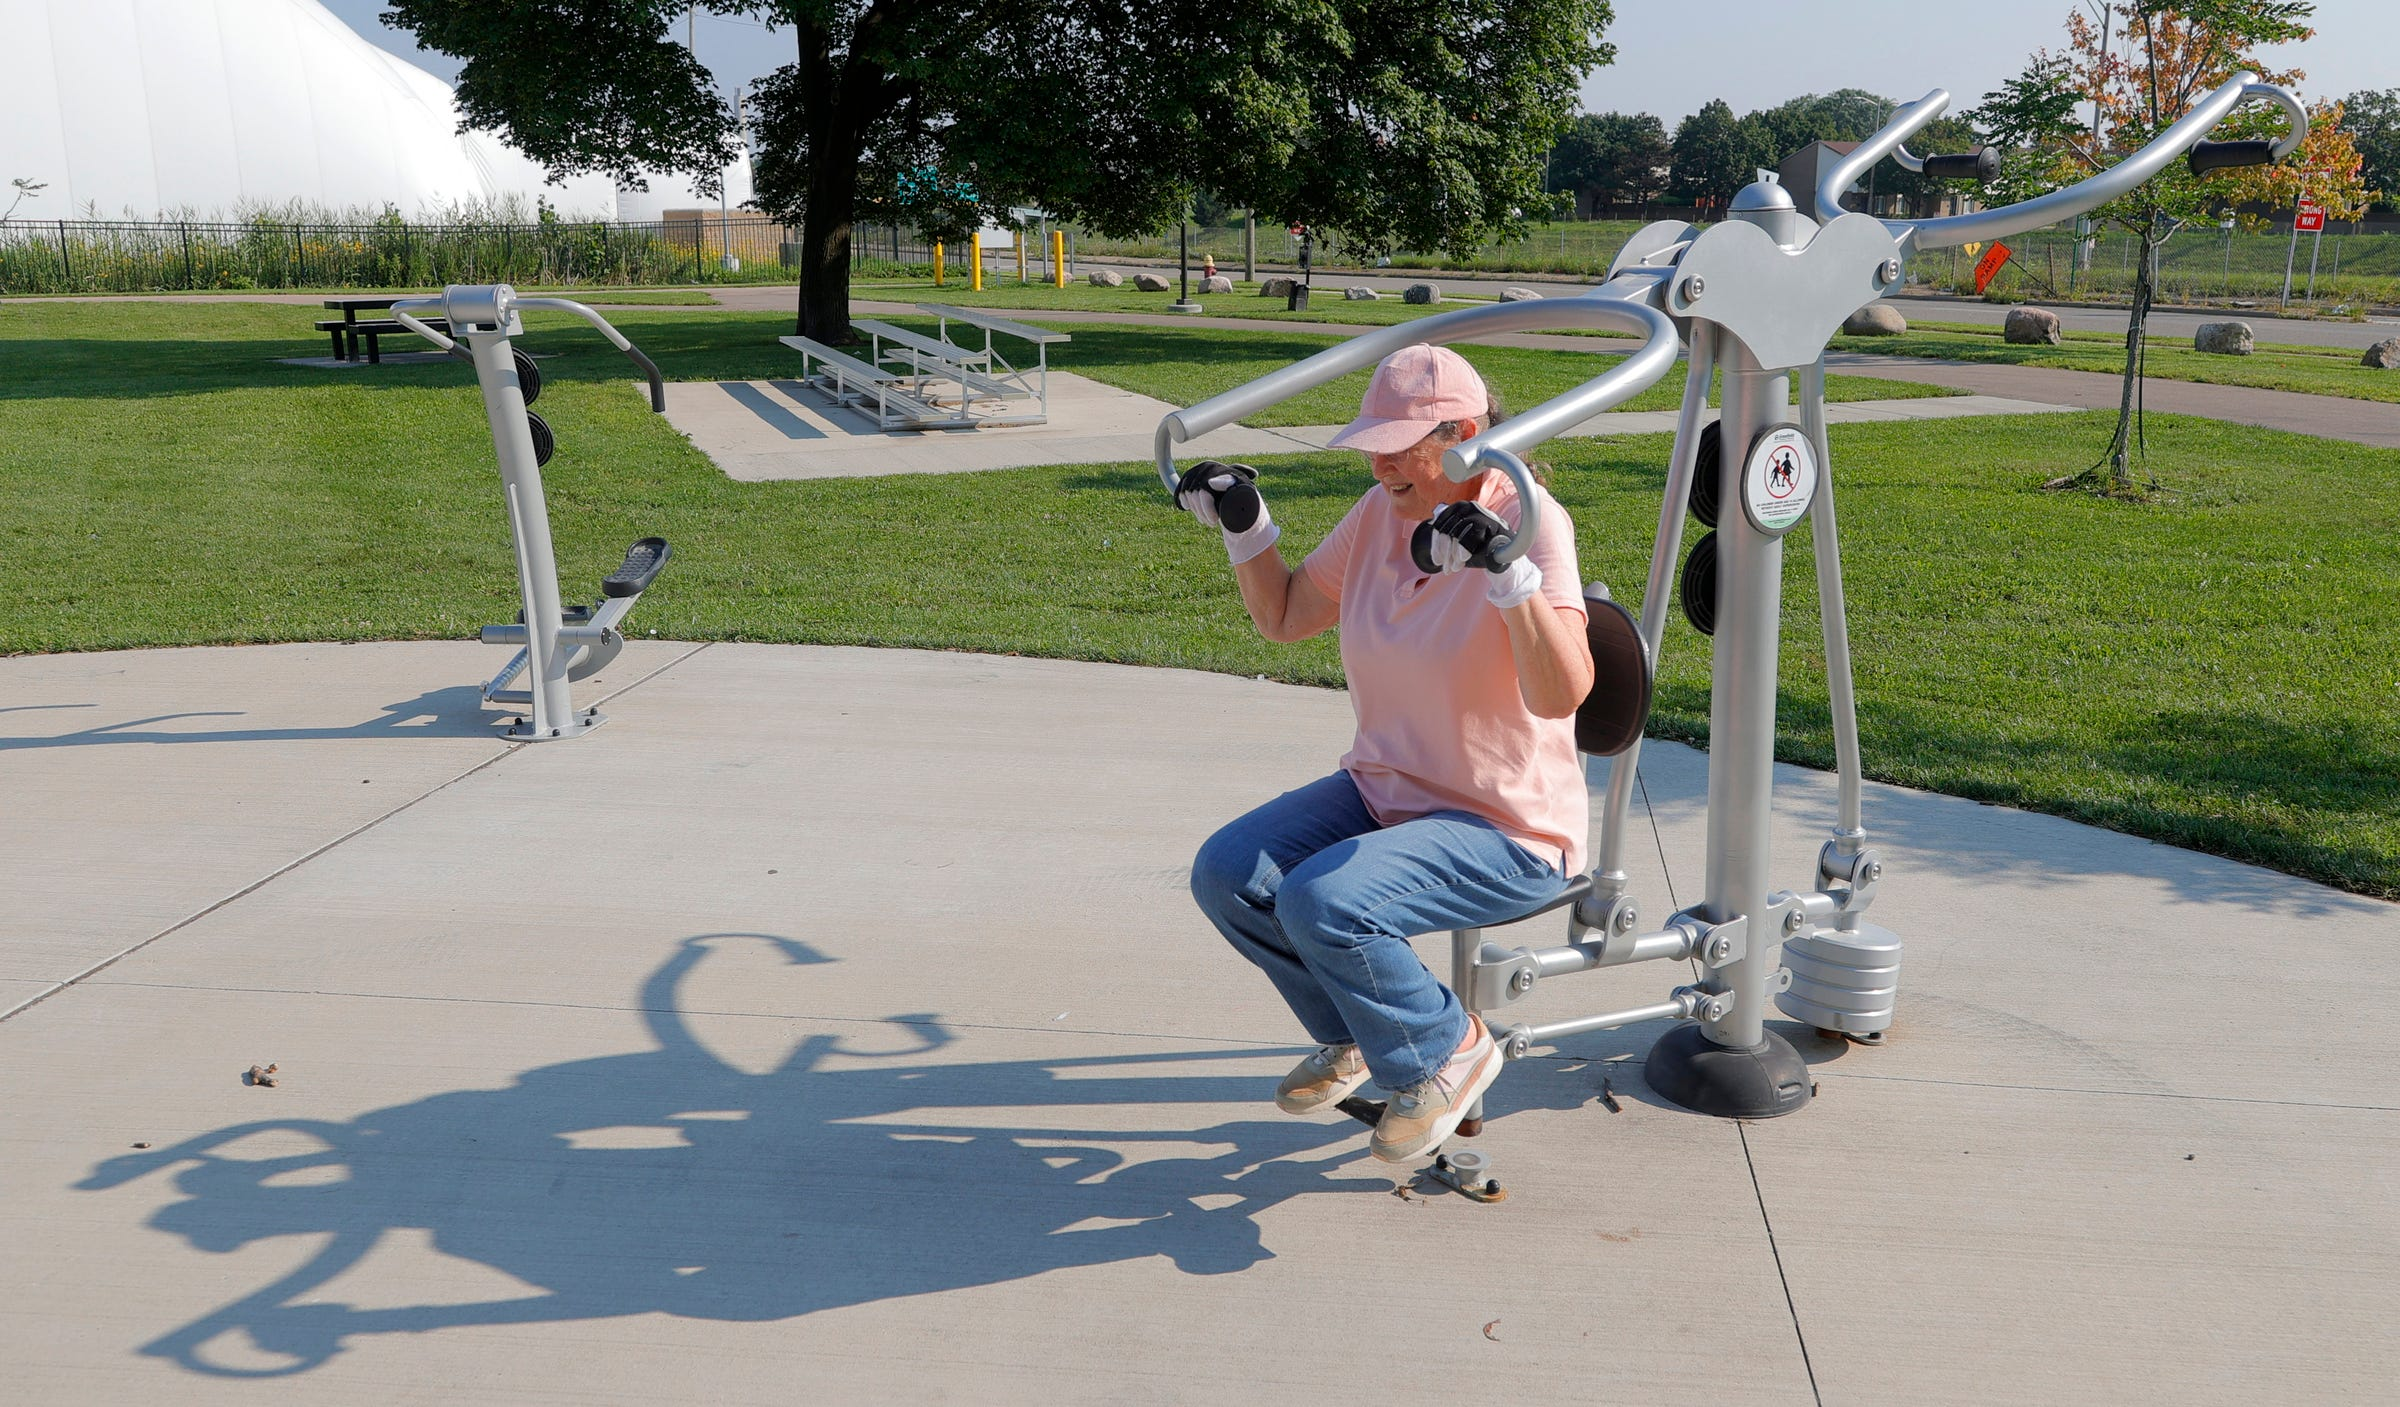 Margaret England works out on various fitness machines at Tolan Park by the I-75 service drive and Mack Avenue on July 28, 2021. England, who comes here a few times each week, puts in up to two hours on the various workout equipment that's free for the public to use. She's been on a mission to get and stay fit.